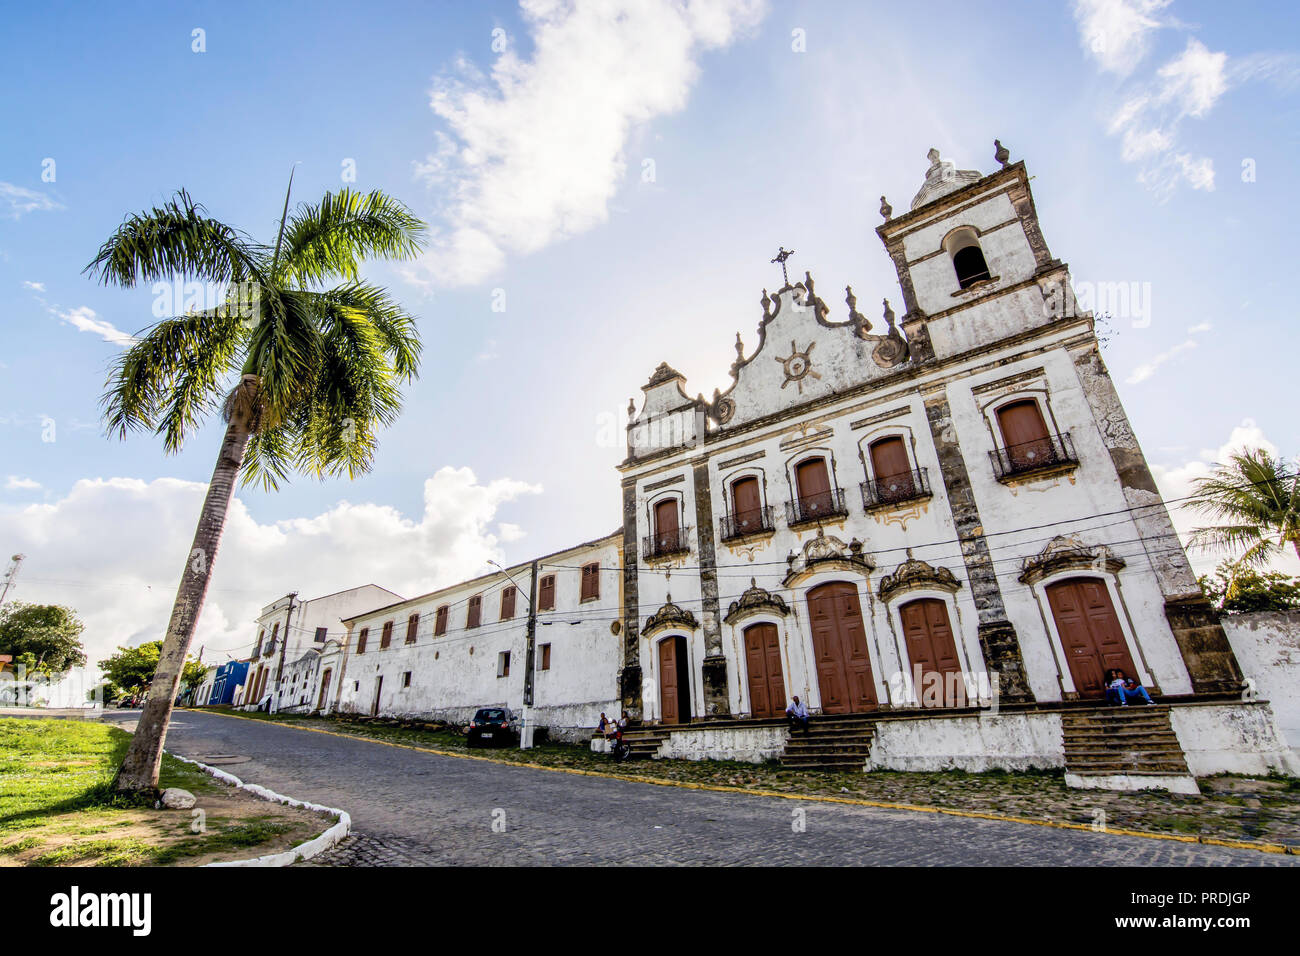 Convent of St. Anthony and the Ensemble of the Sacred Heart of Jesus, Igarassu, Pernambuco, Brazil - Stock Image